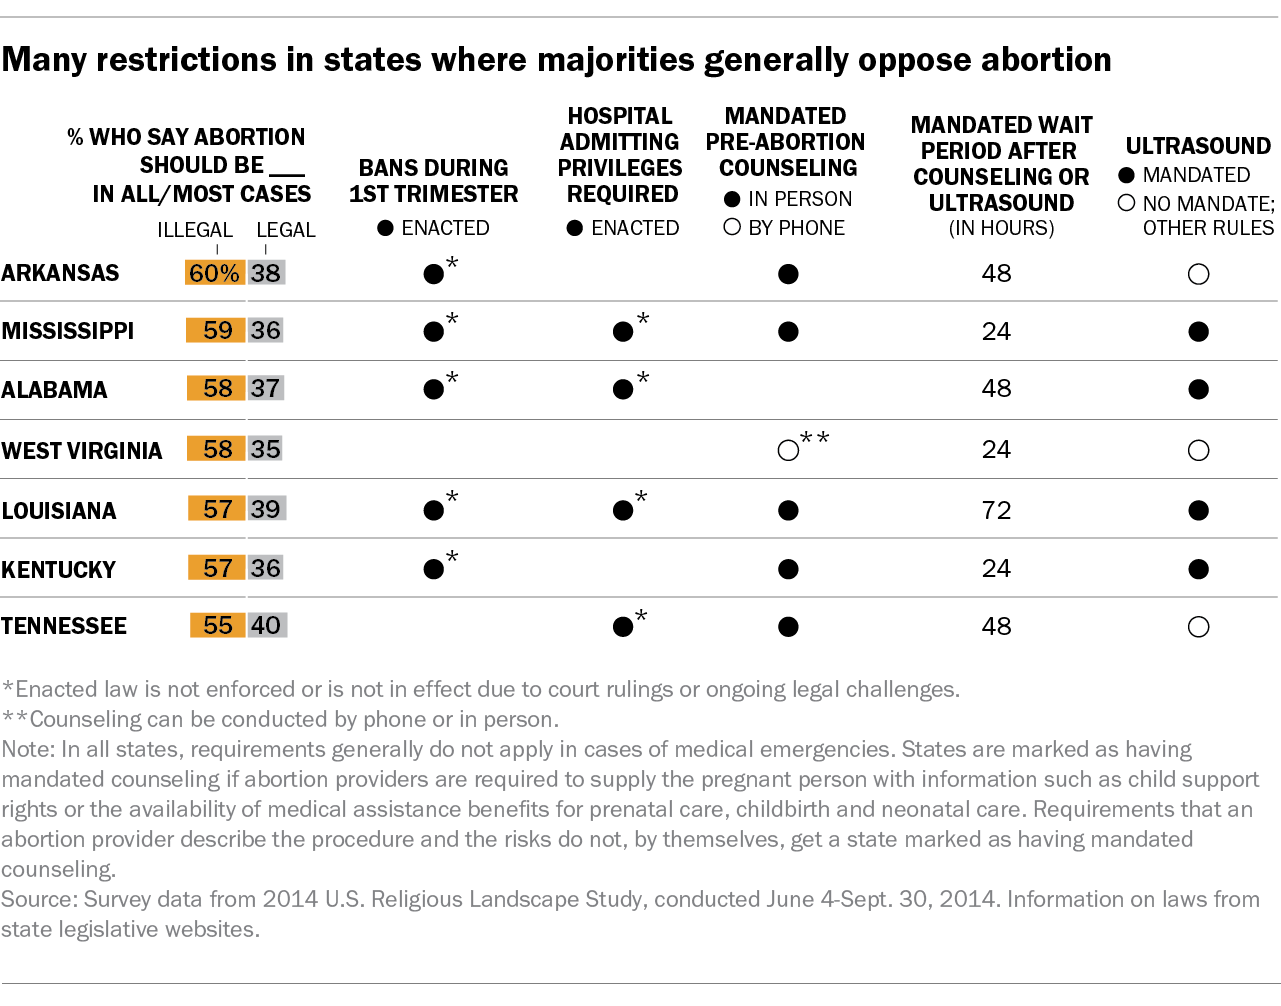 Many restrictions in states where majorities generally oppose abortion